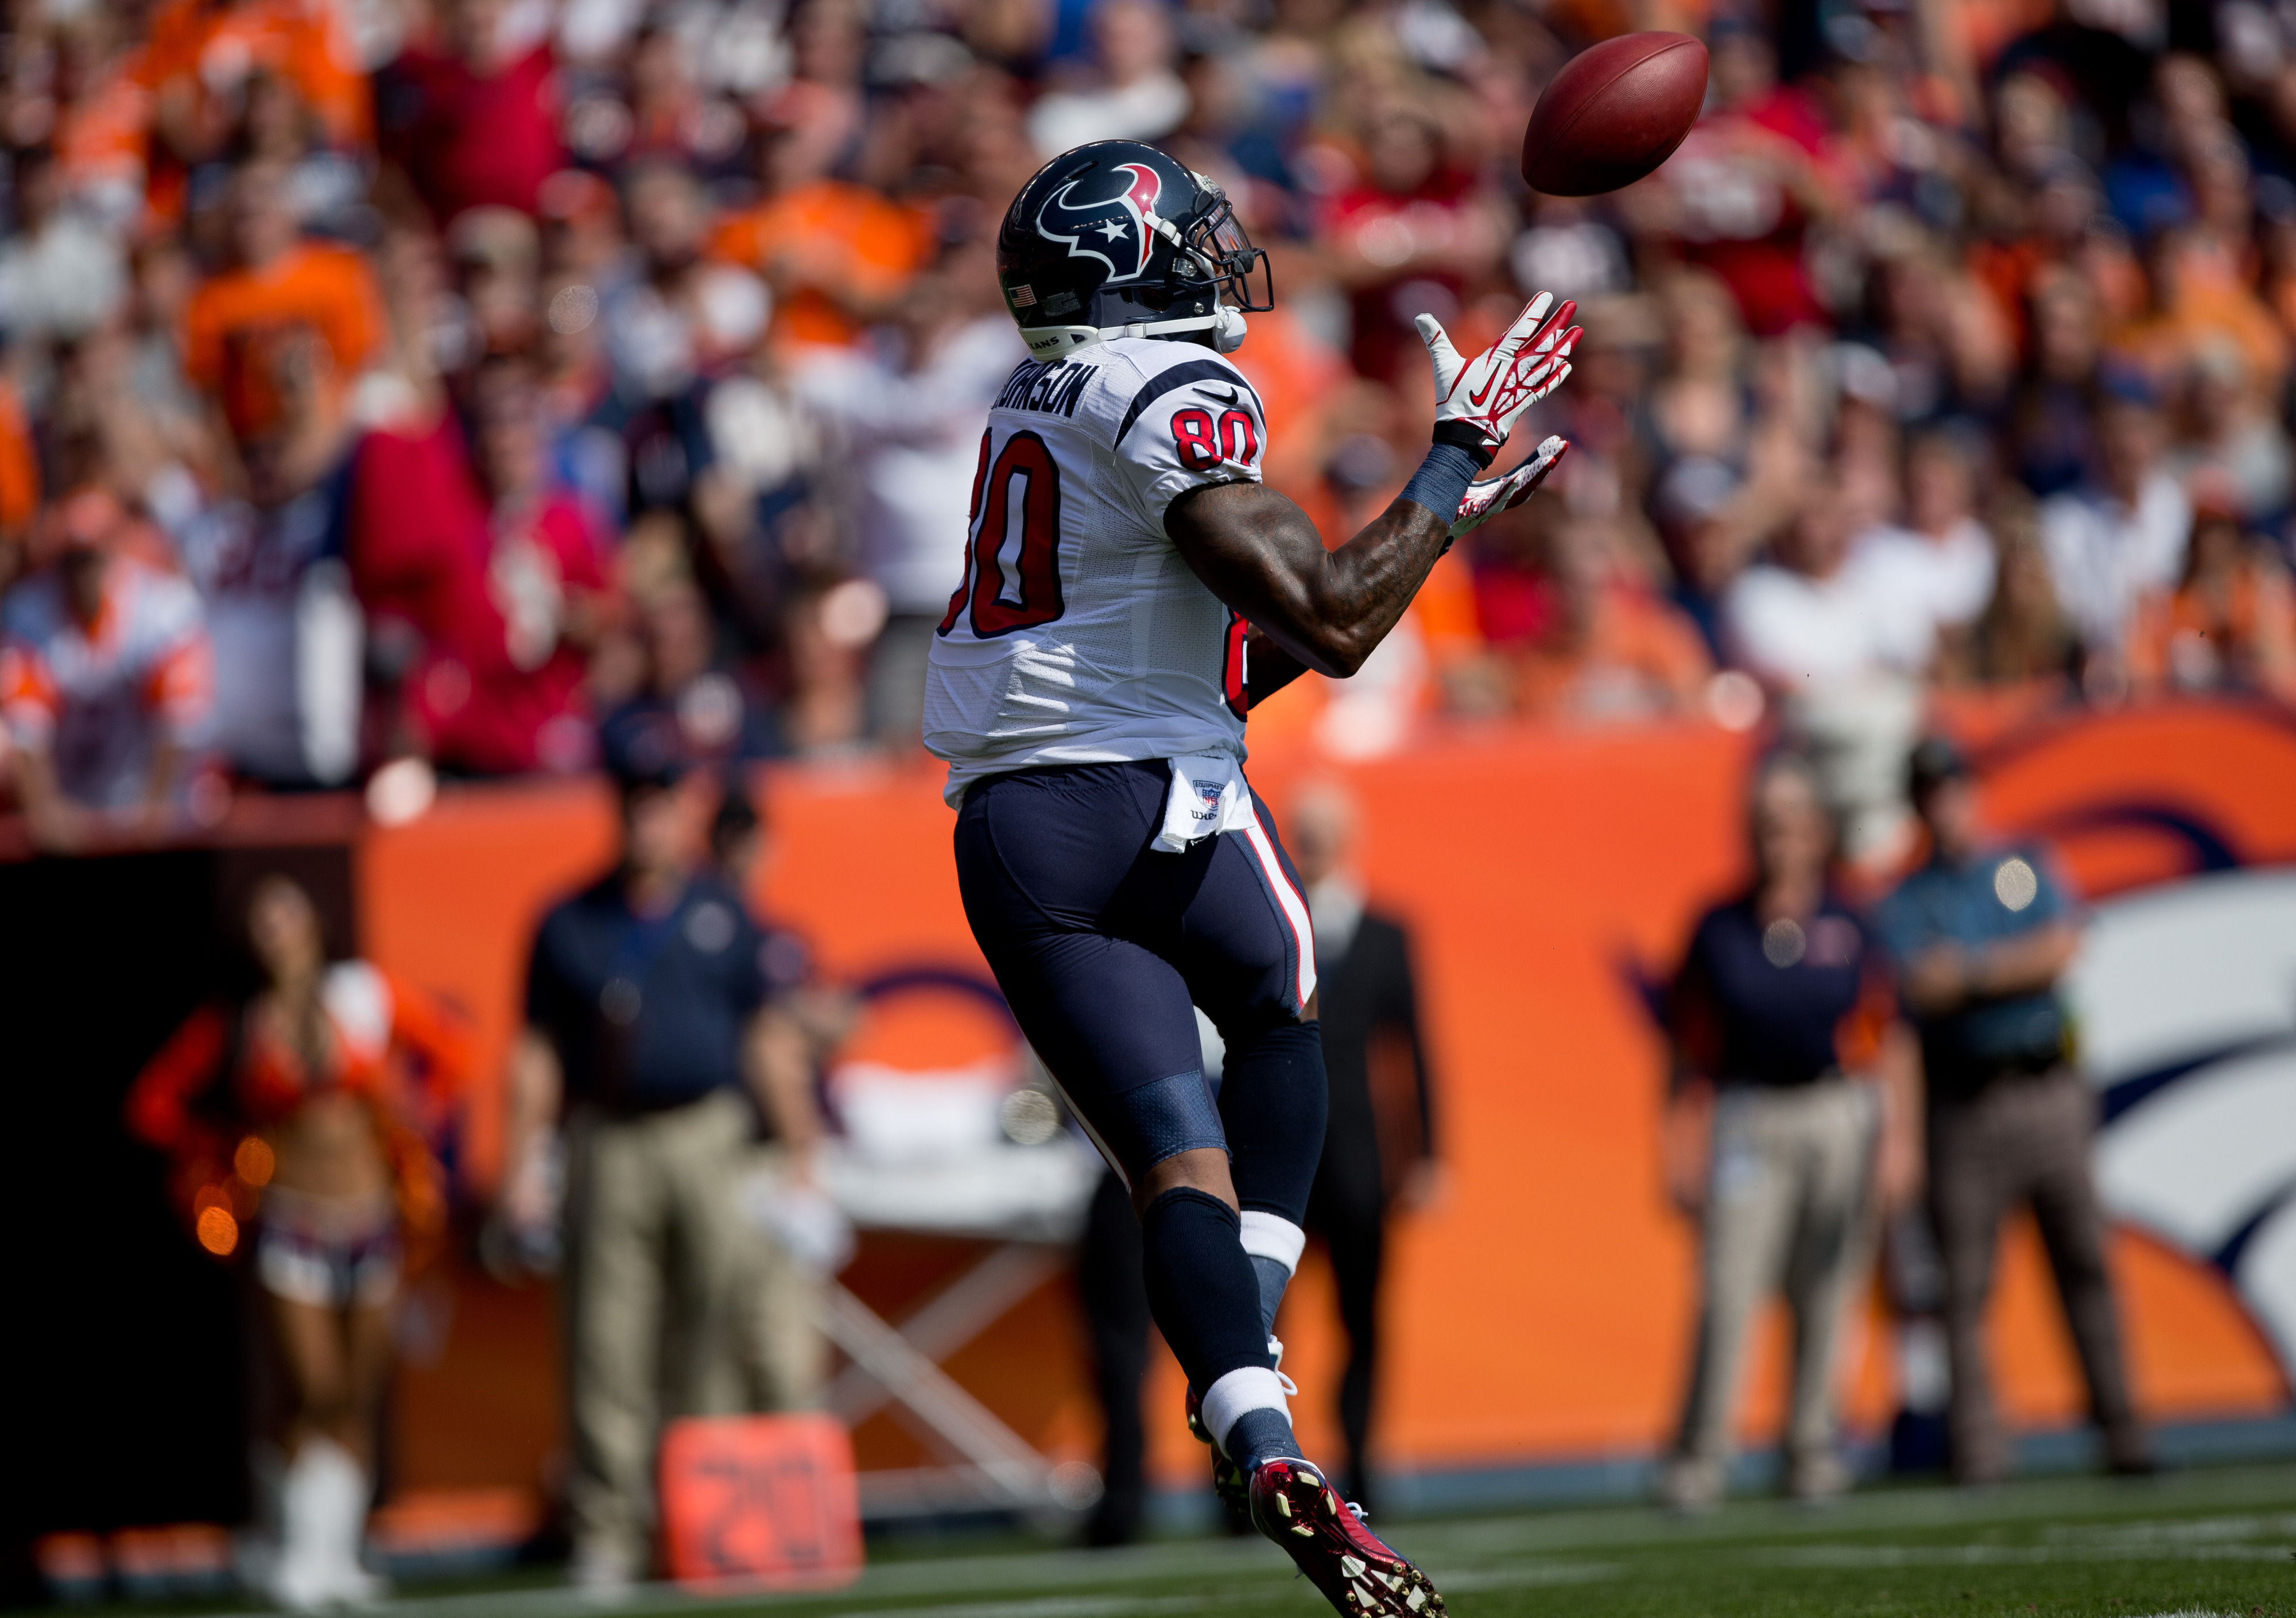 Andre Johnson, The Great One, making the catch on the play broken down below.